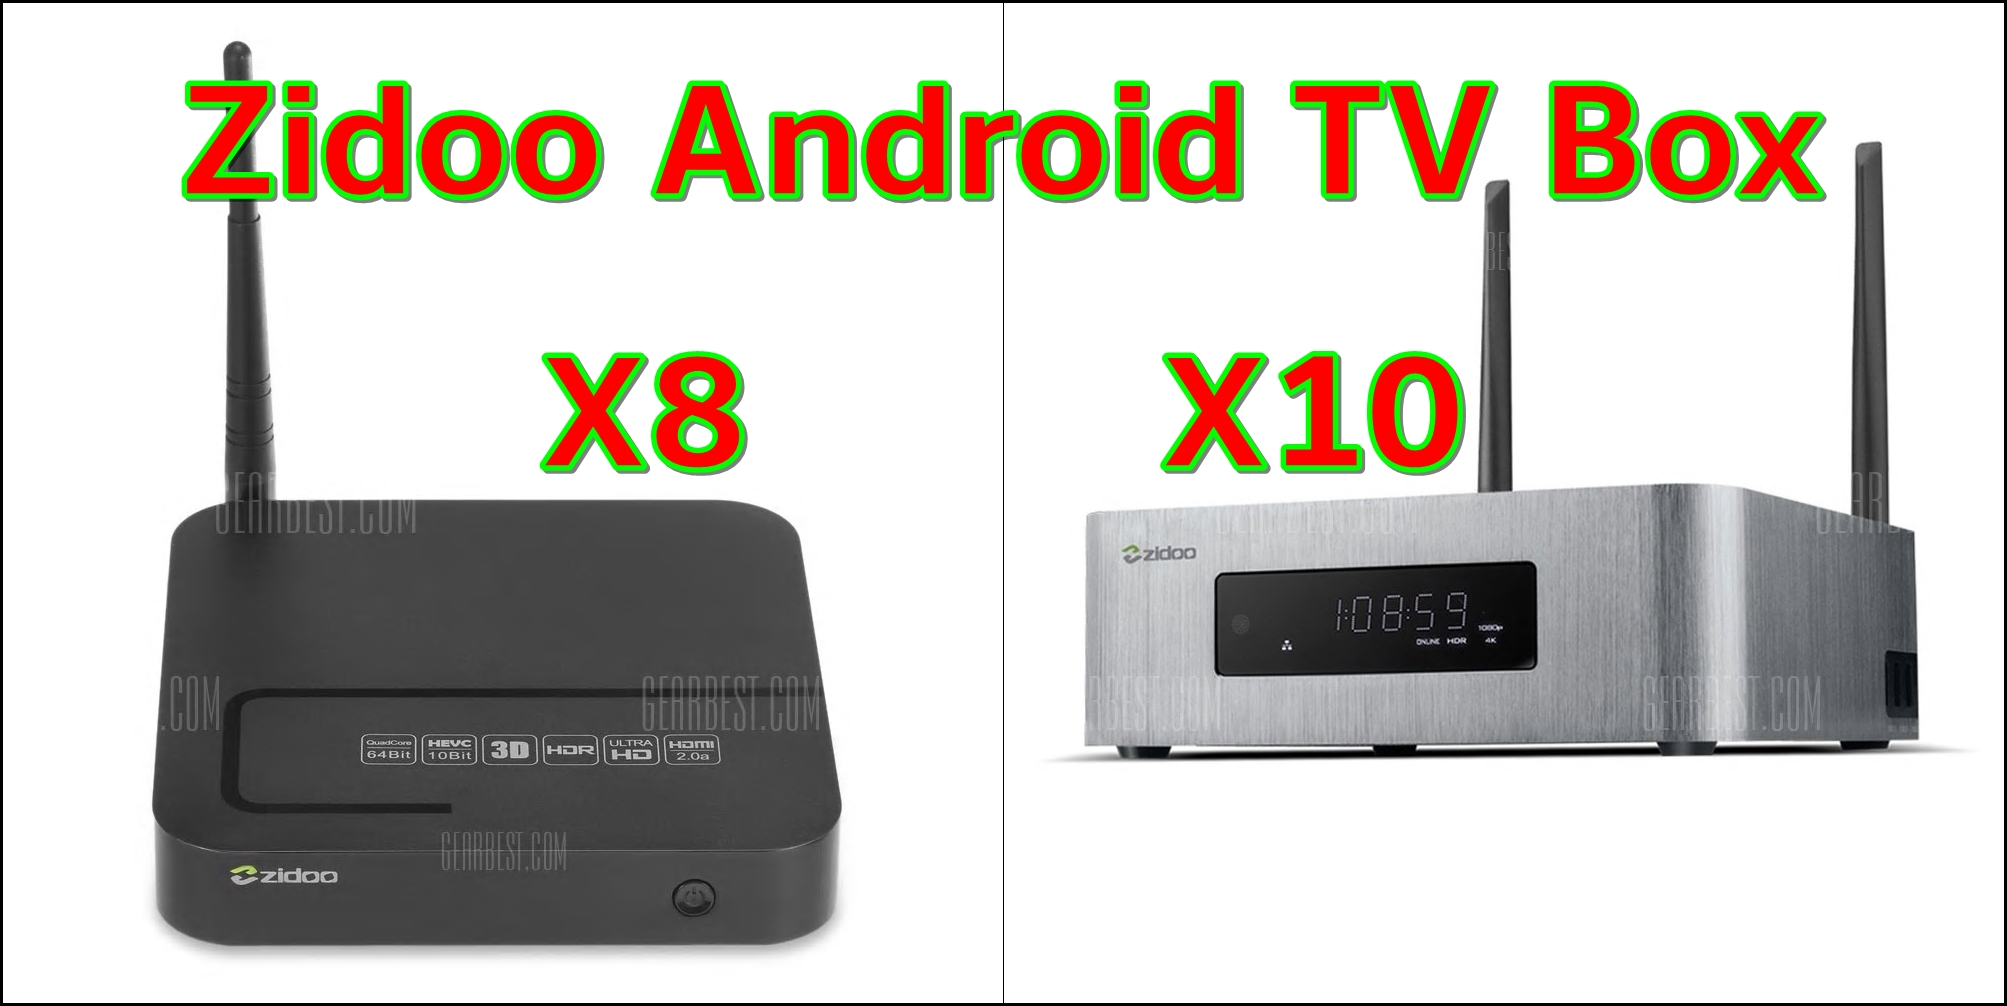 Zidoo Android TV Box